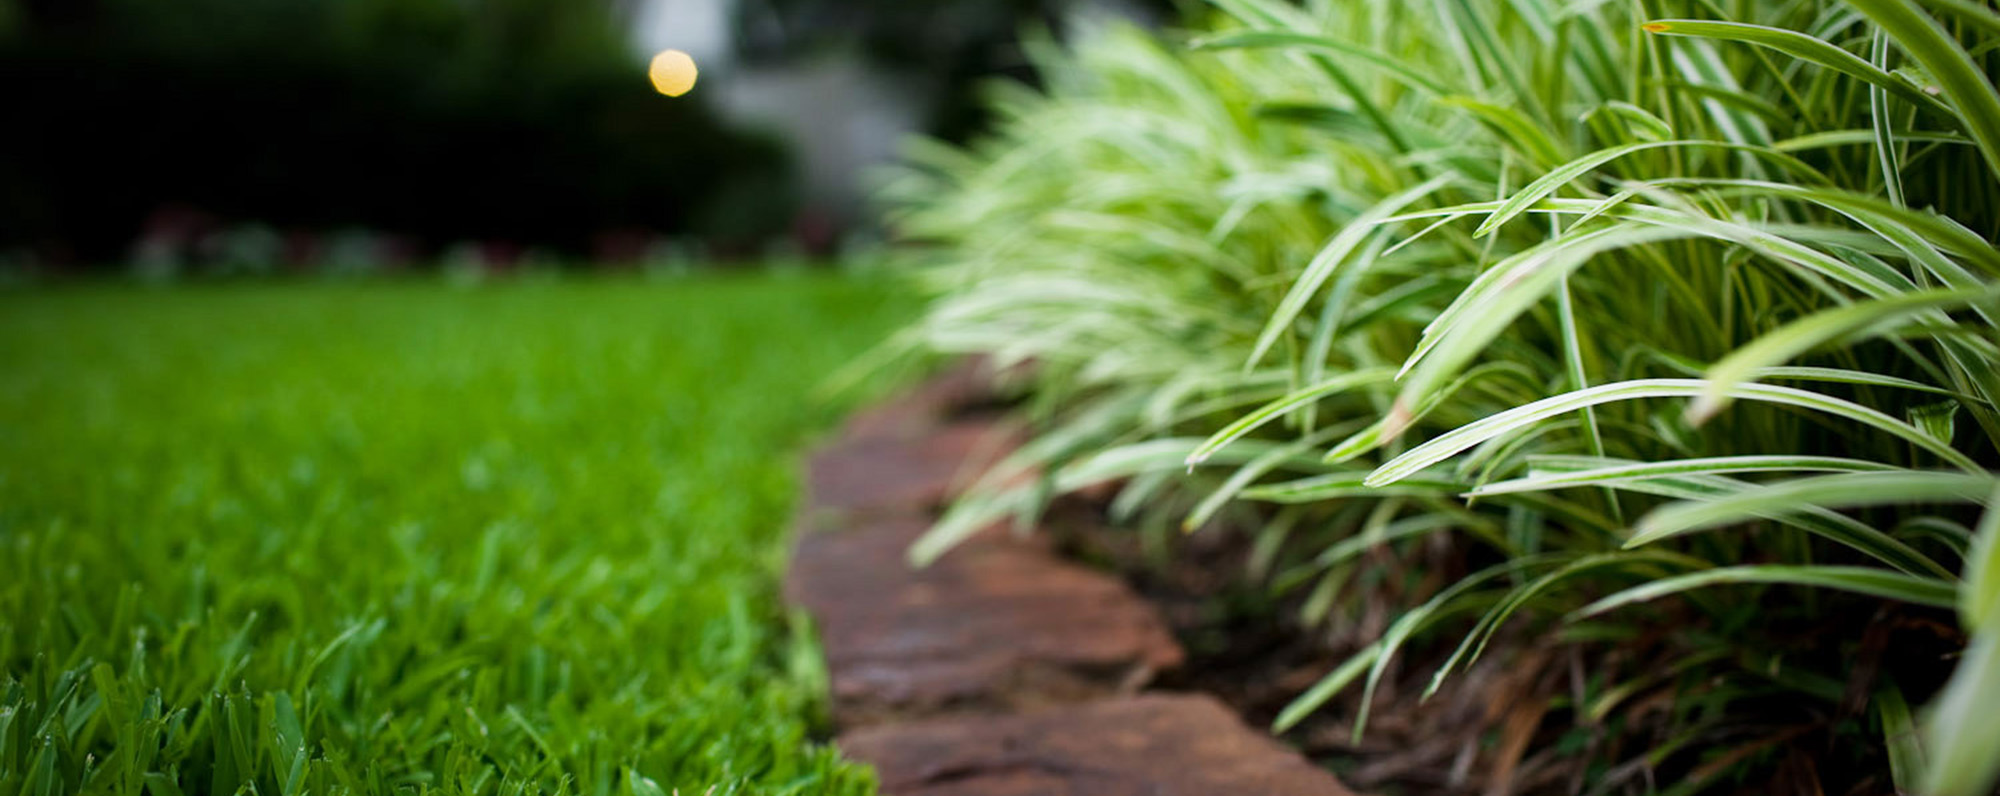 landscape-maintenance-prevent-mold-nj